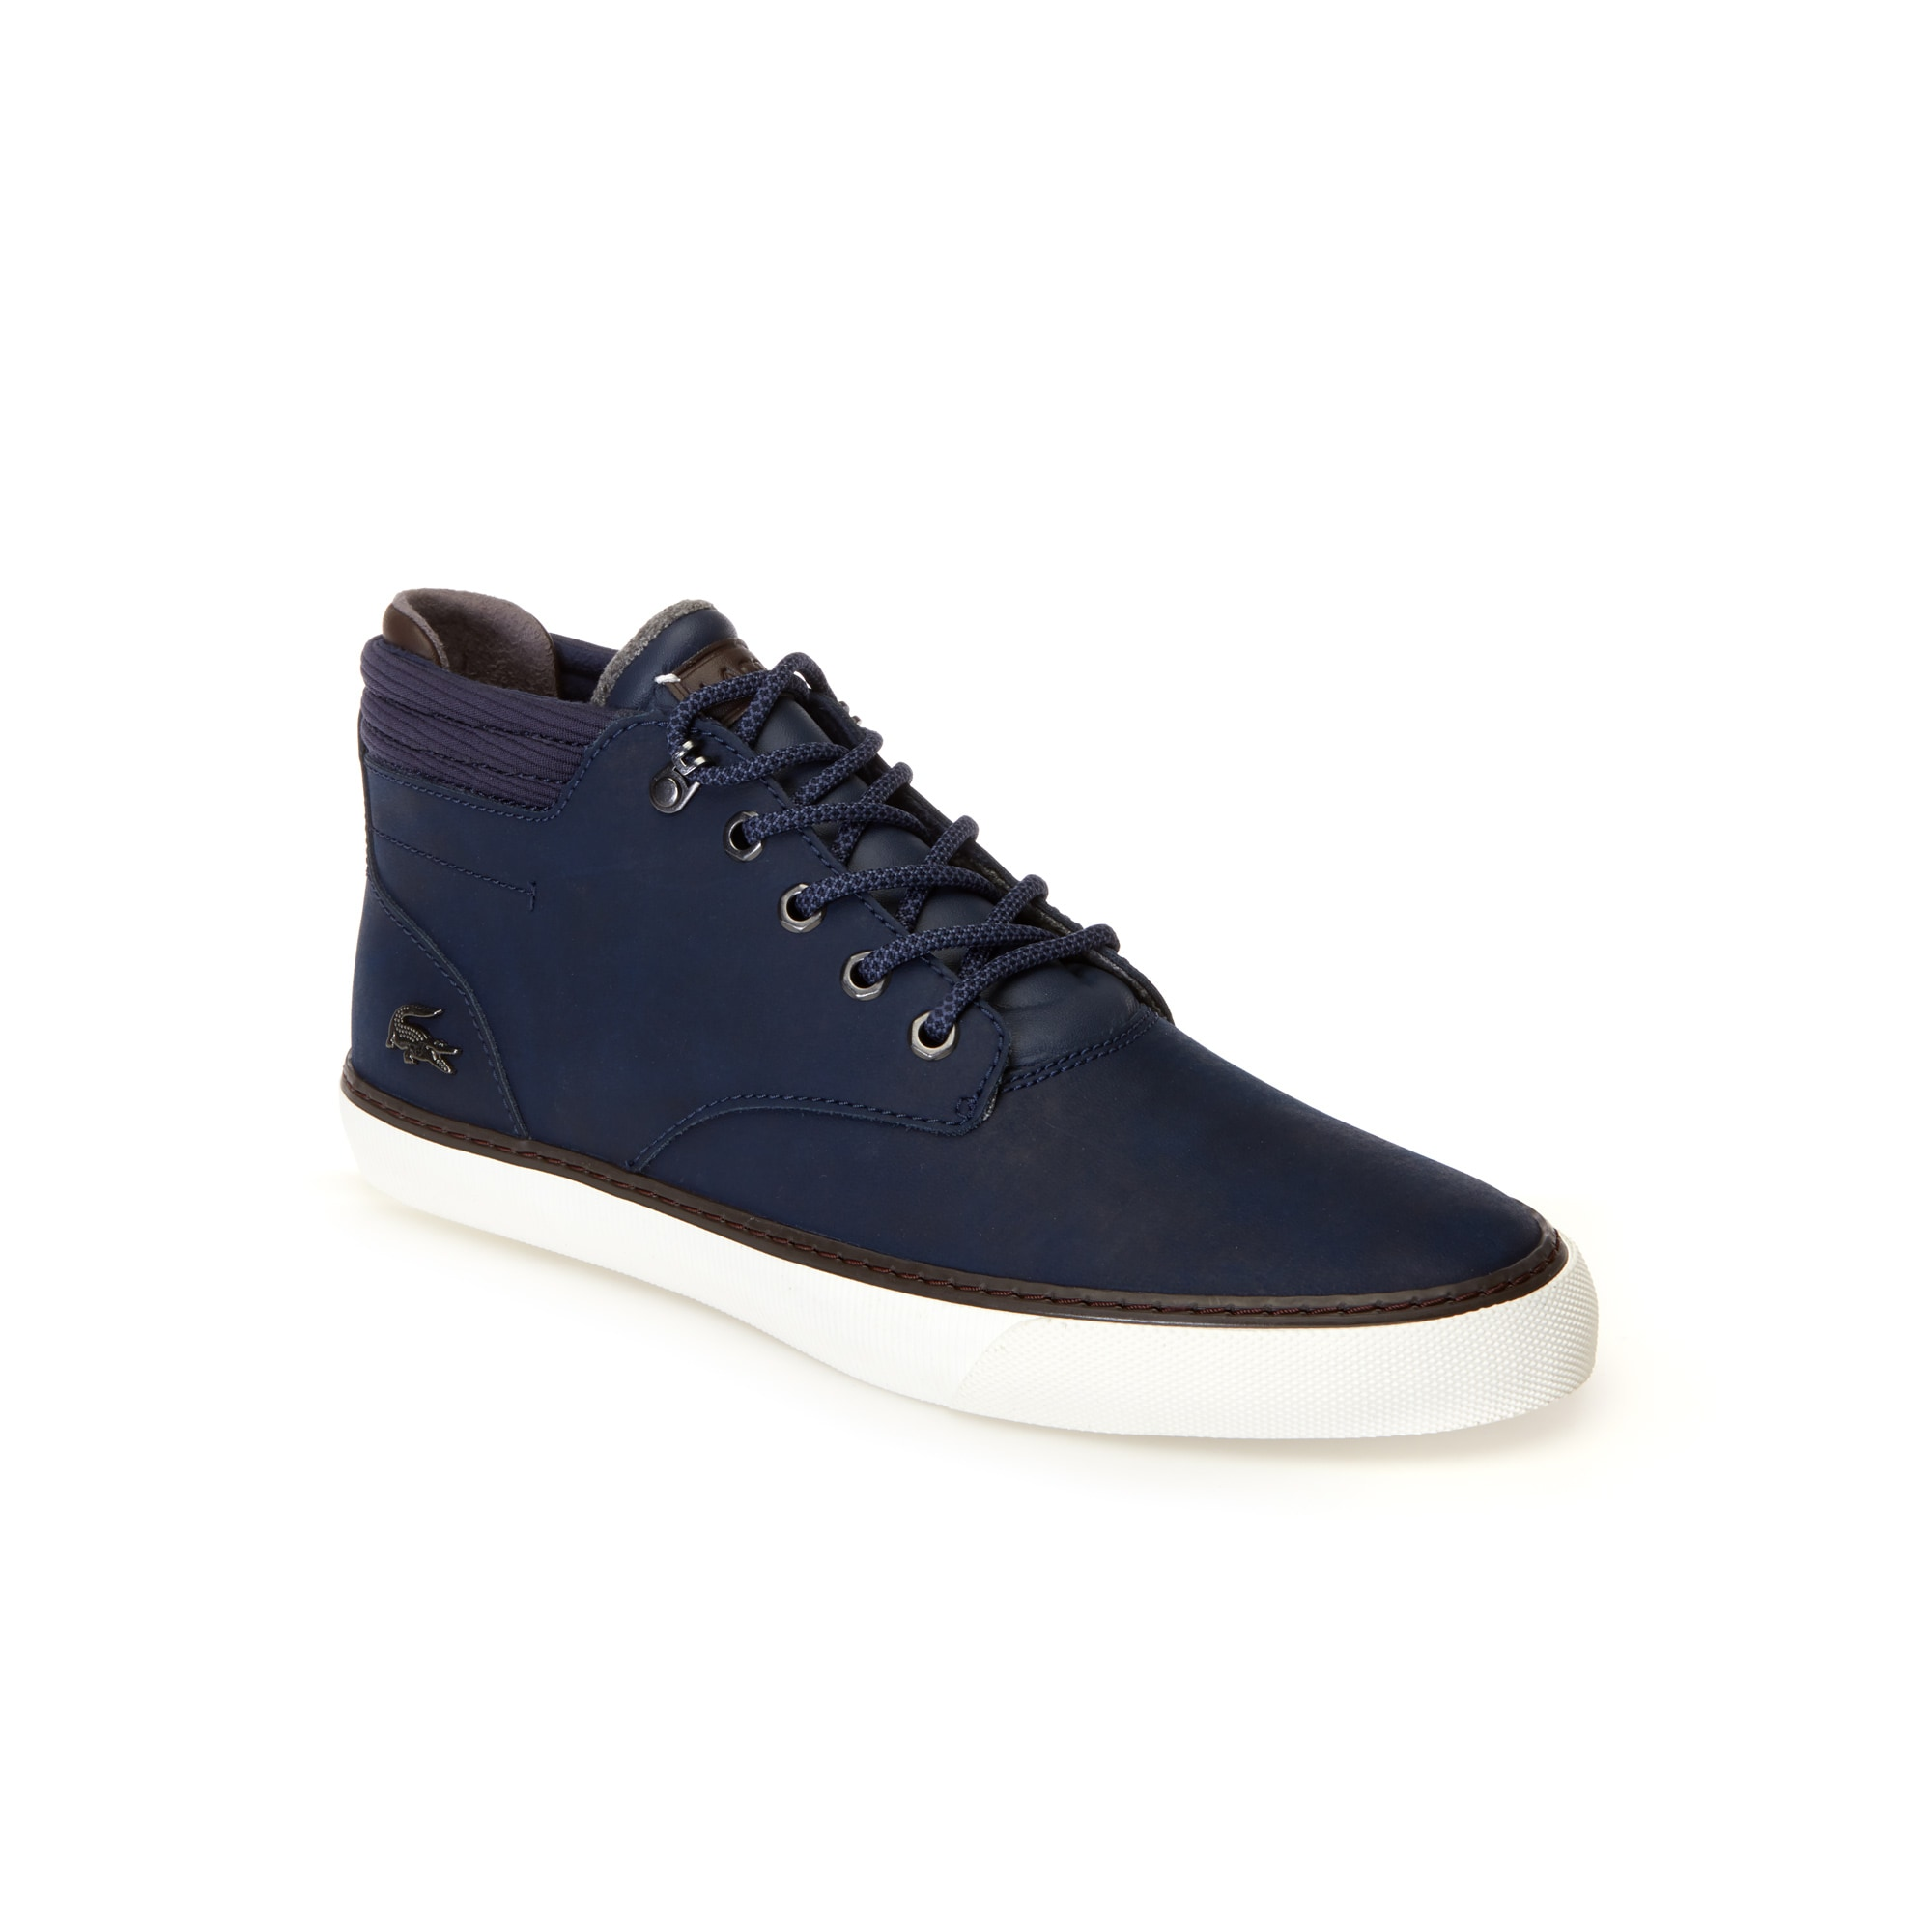 Herren Winter High-Top Sneakers ESPARRE aus Leder